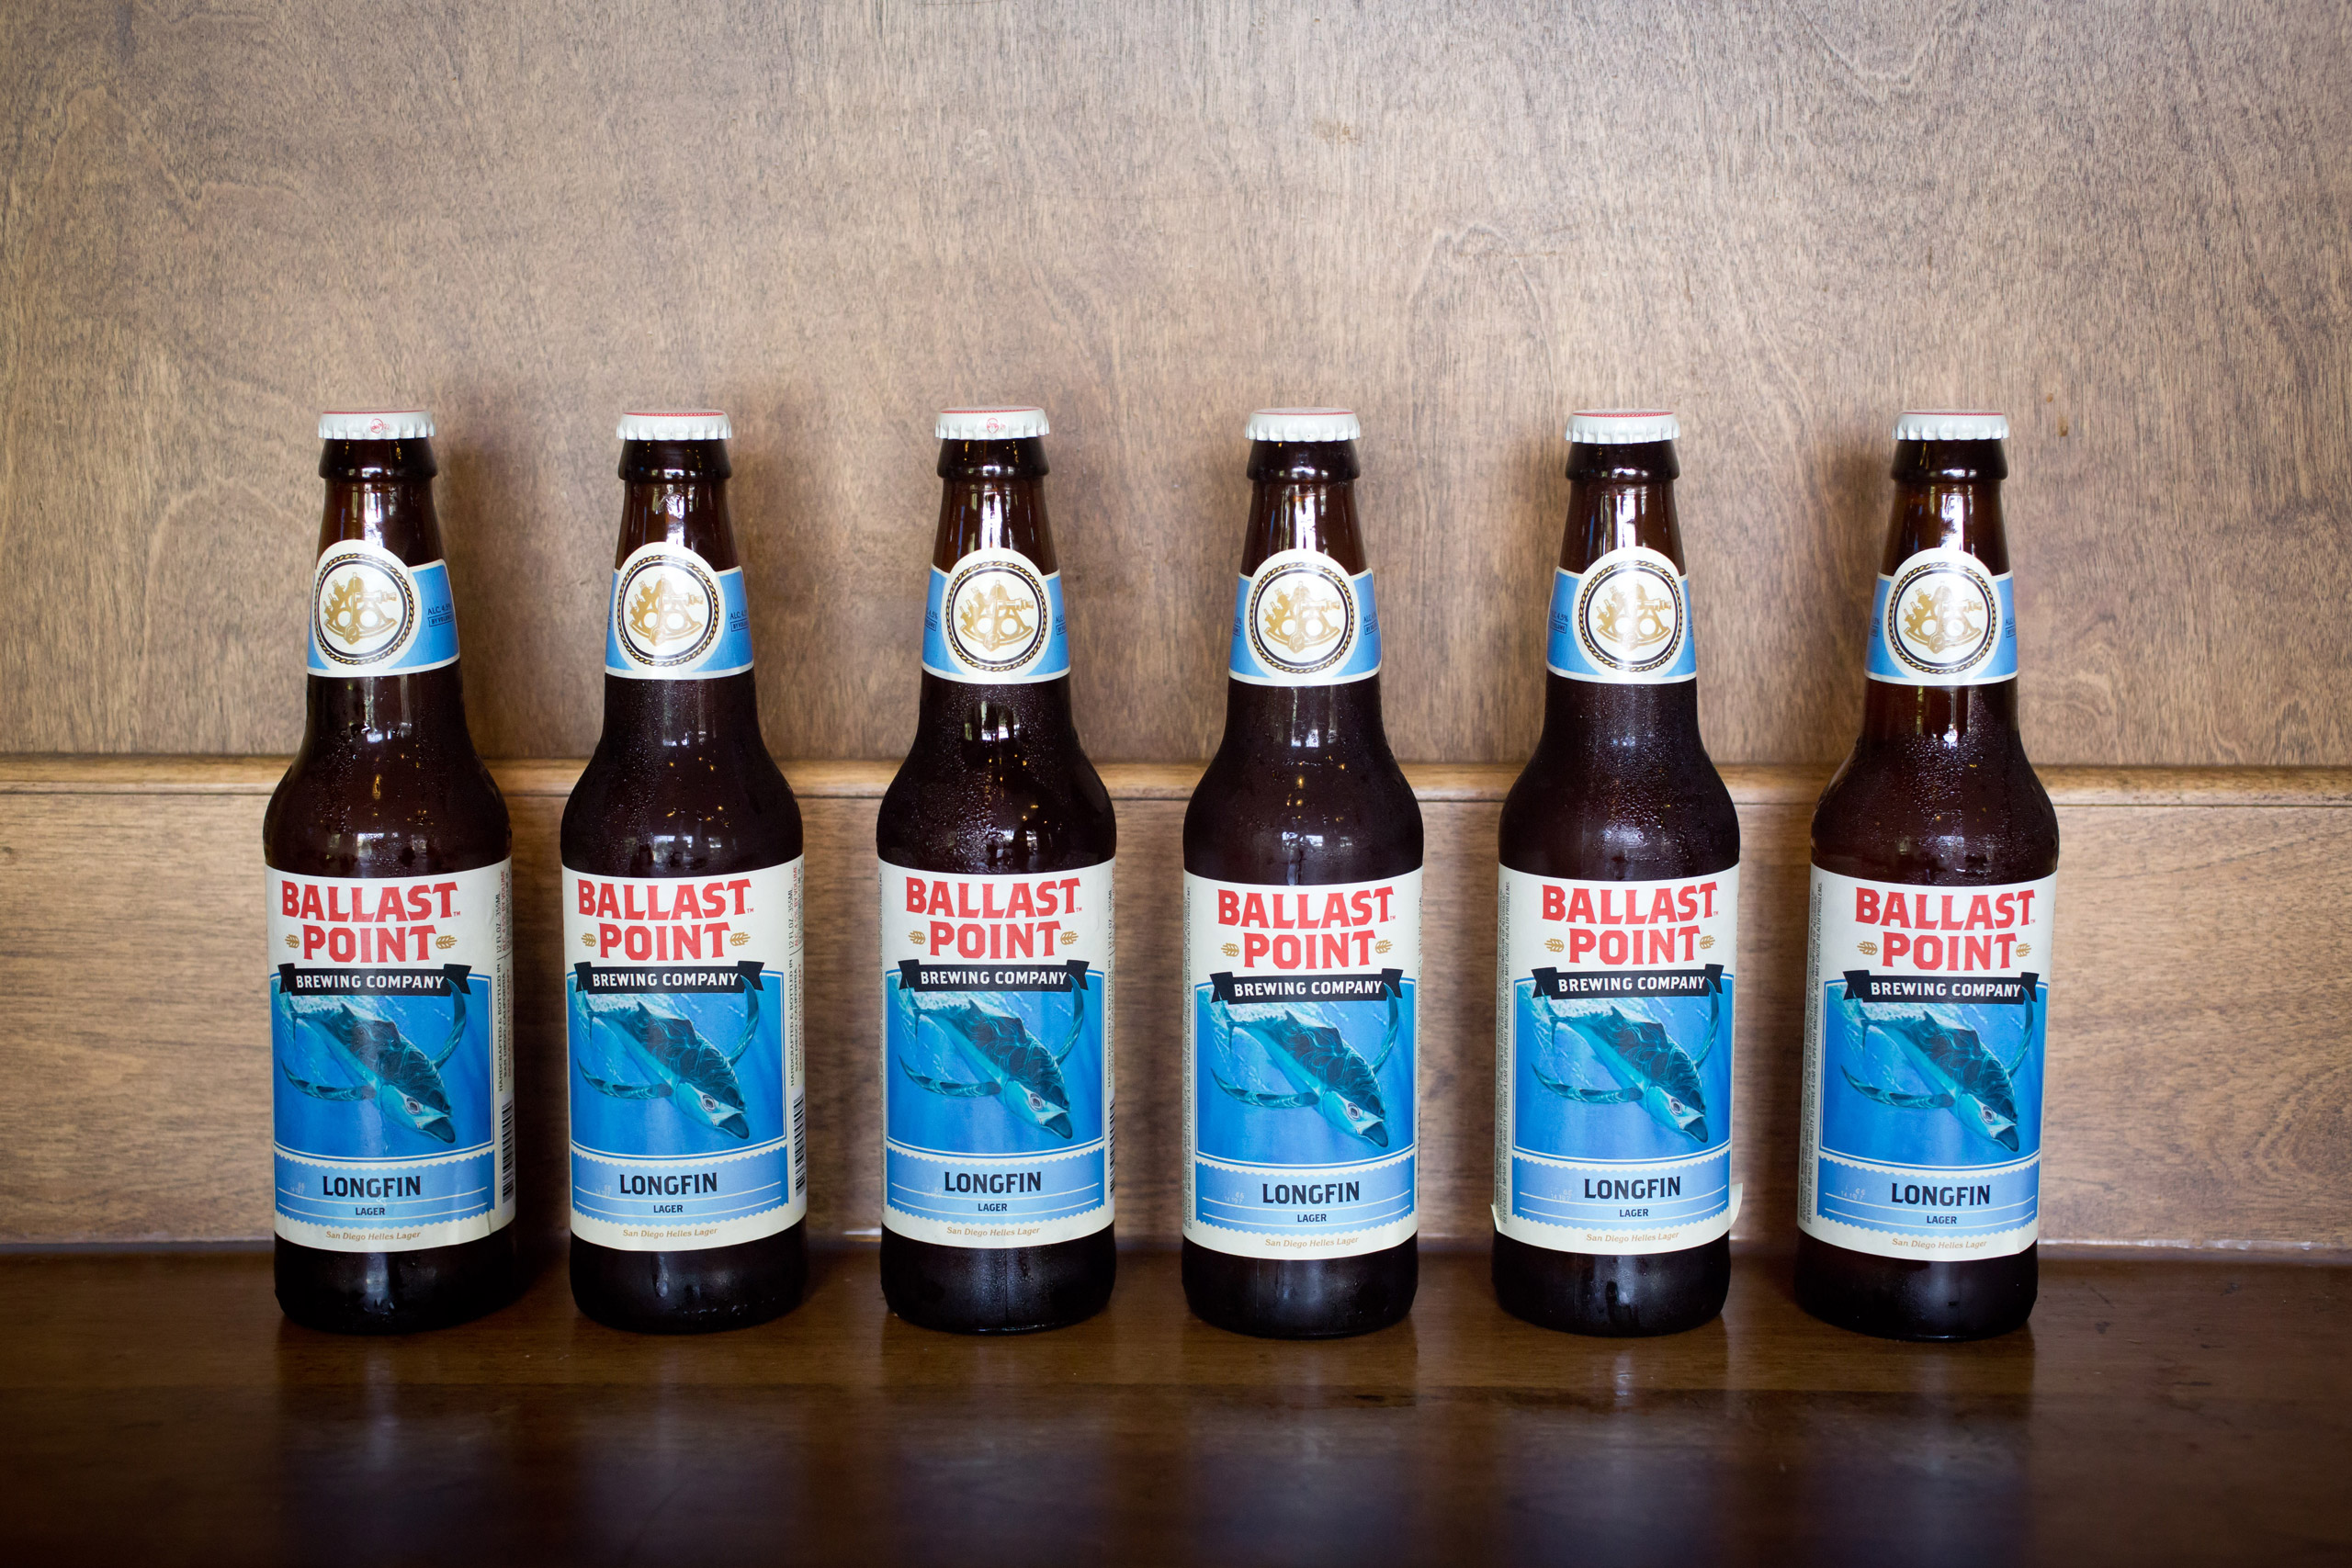 Bottles with Longfin Lager, Helles Lager in the tasting room of the Ballast Point Brewing Company, a micro brewery in San Diego, on August 25, 2014.